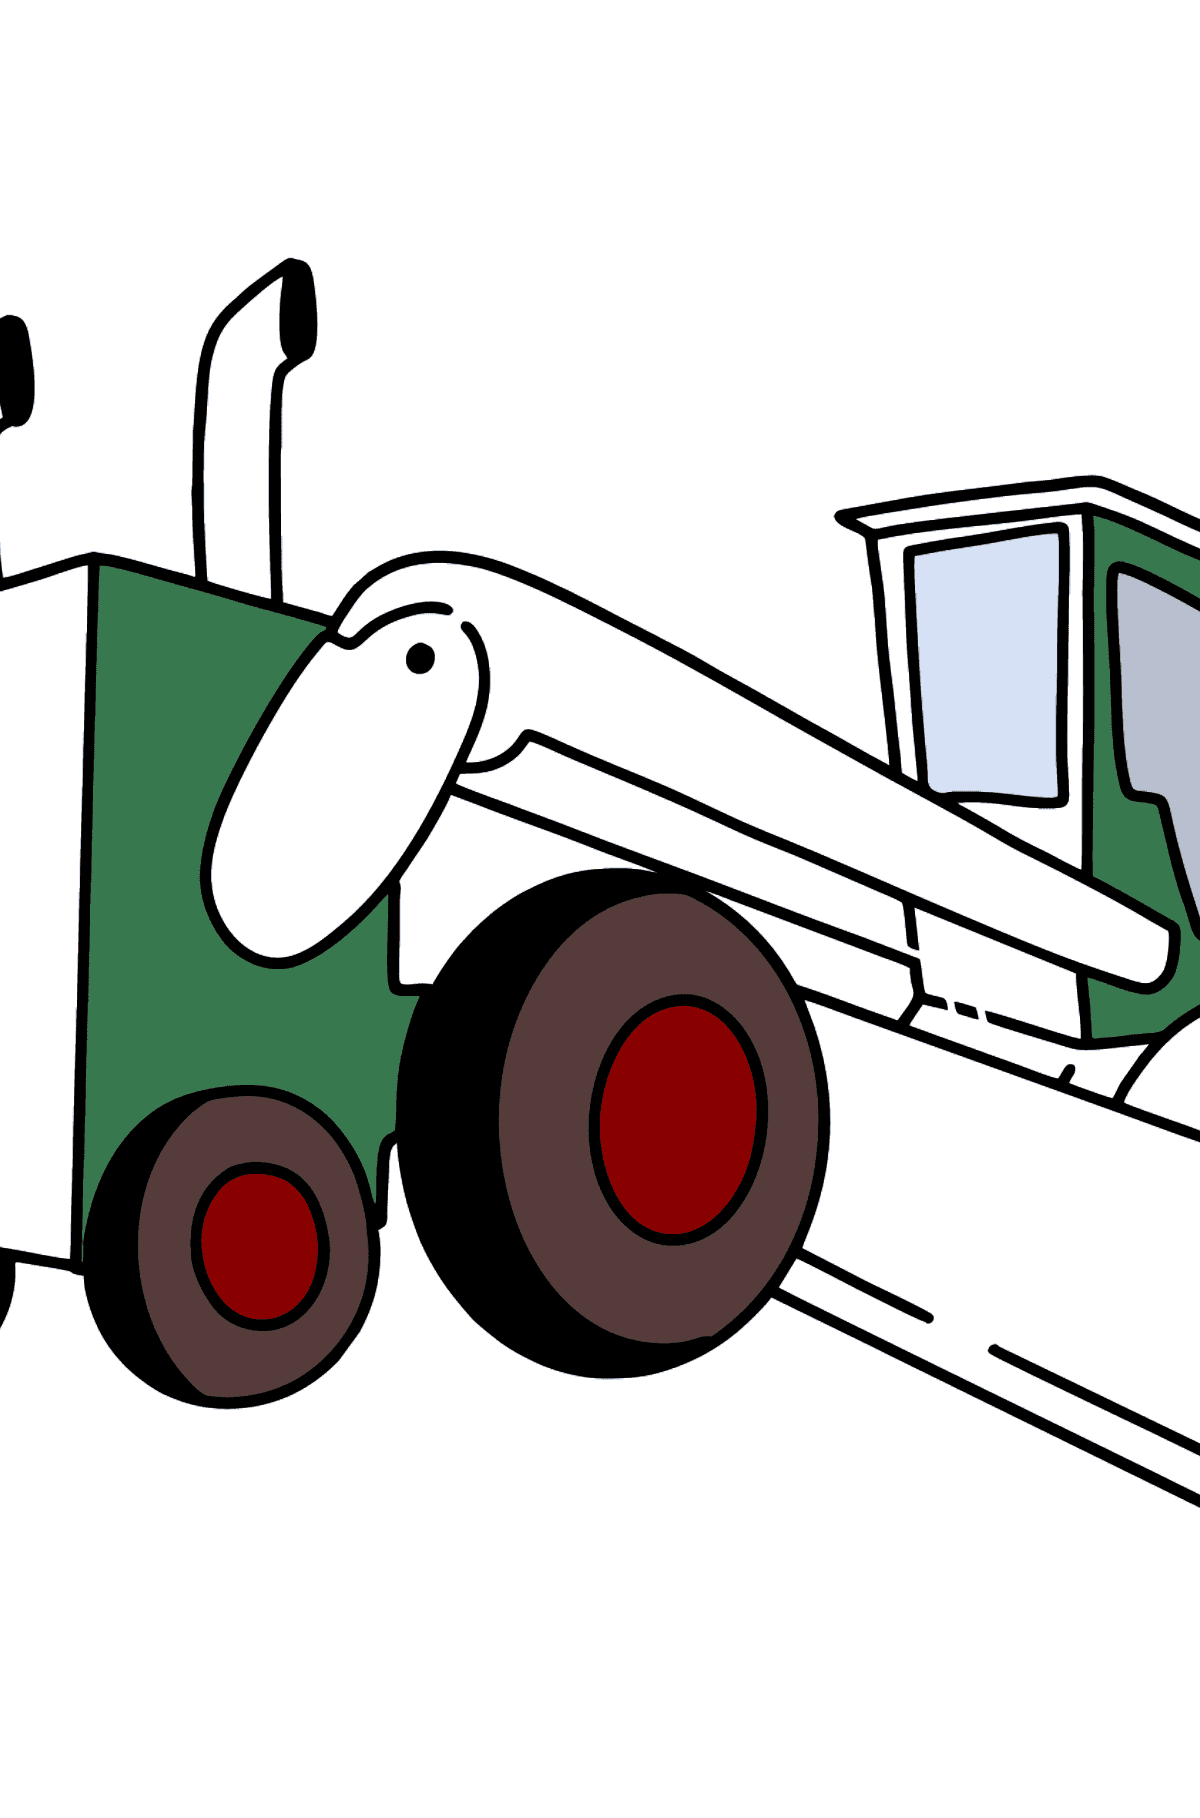 Tractor Grader coloring page - Coloring Pages for Kids